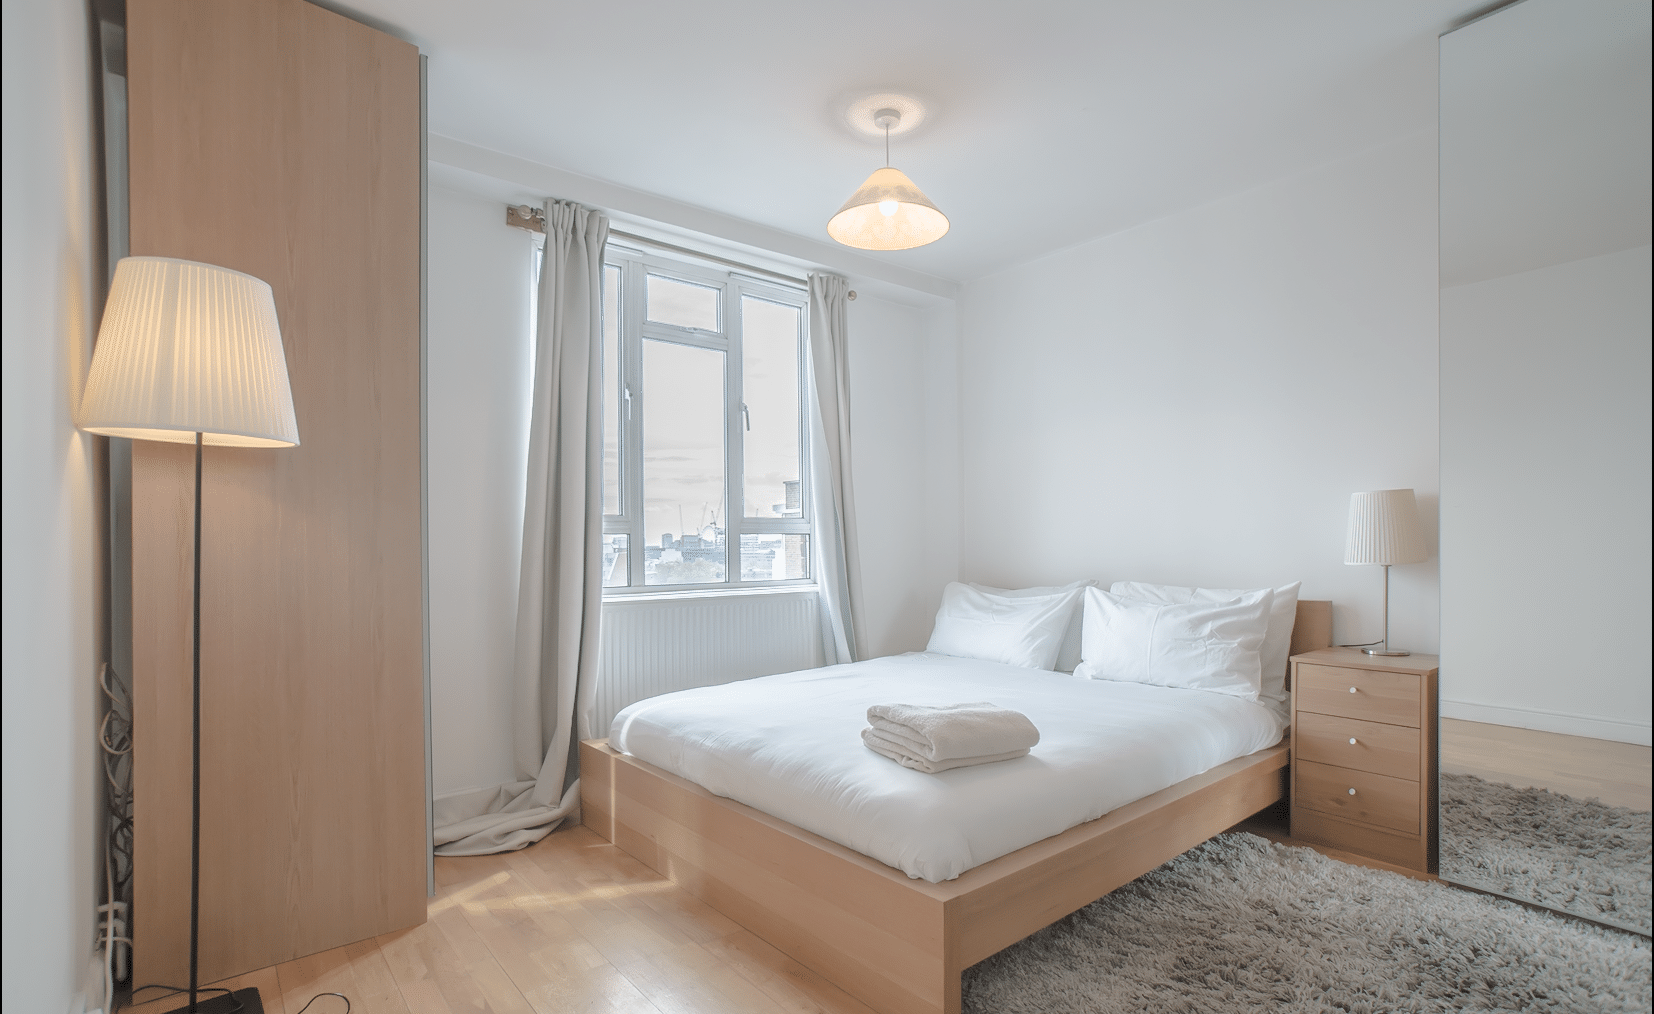 Apartment photography in old old street, old street photographer, interior photographer in old street, london interior photograpy